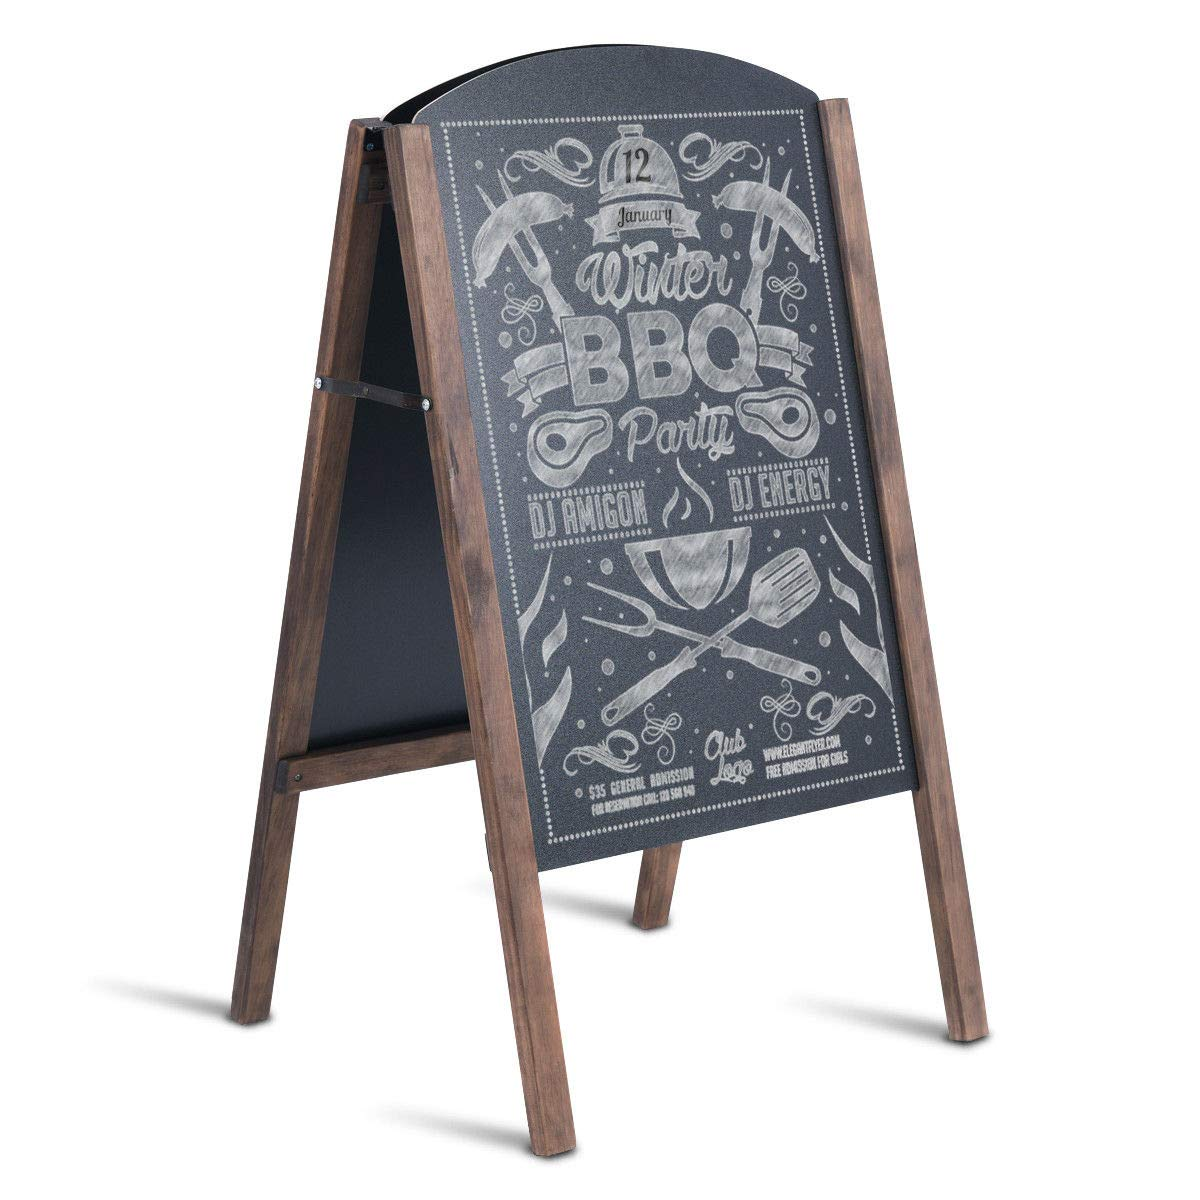 TANGKULA A-Frame Chalkboard Office Taching Rustic Wooden Double-Sided Standing Sidewalk Chalkboard Sign Sandwich Board 25.5x40 (S)